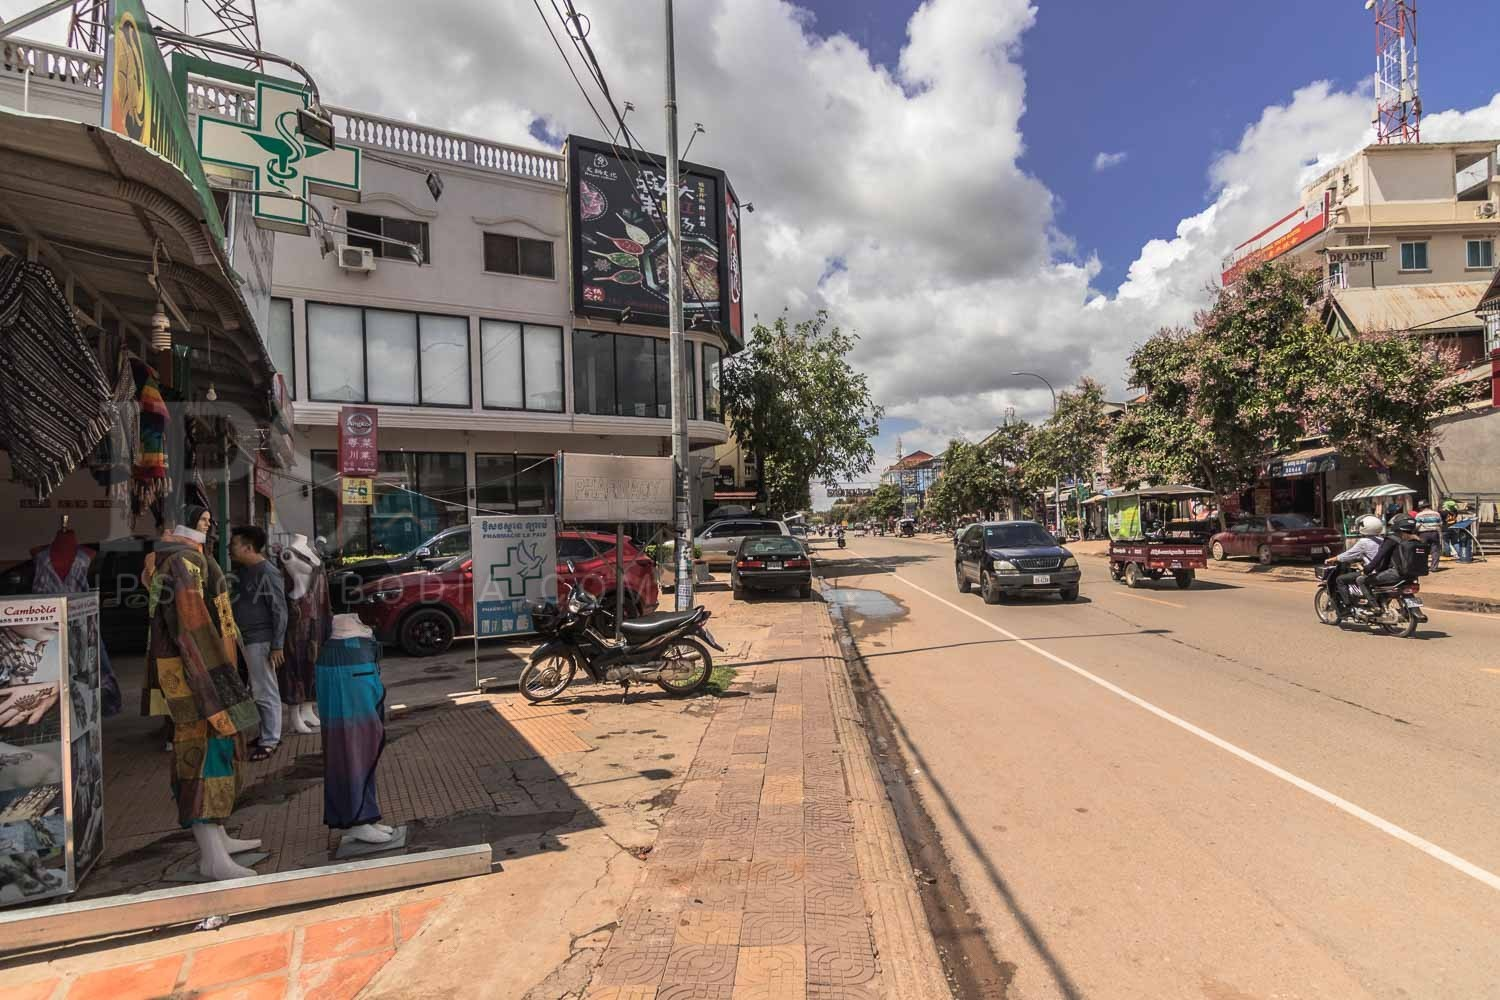 House For Sale in Old Market / Pub Street, Siem Reap